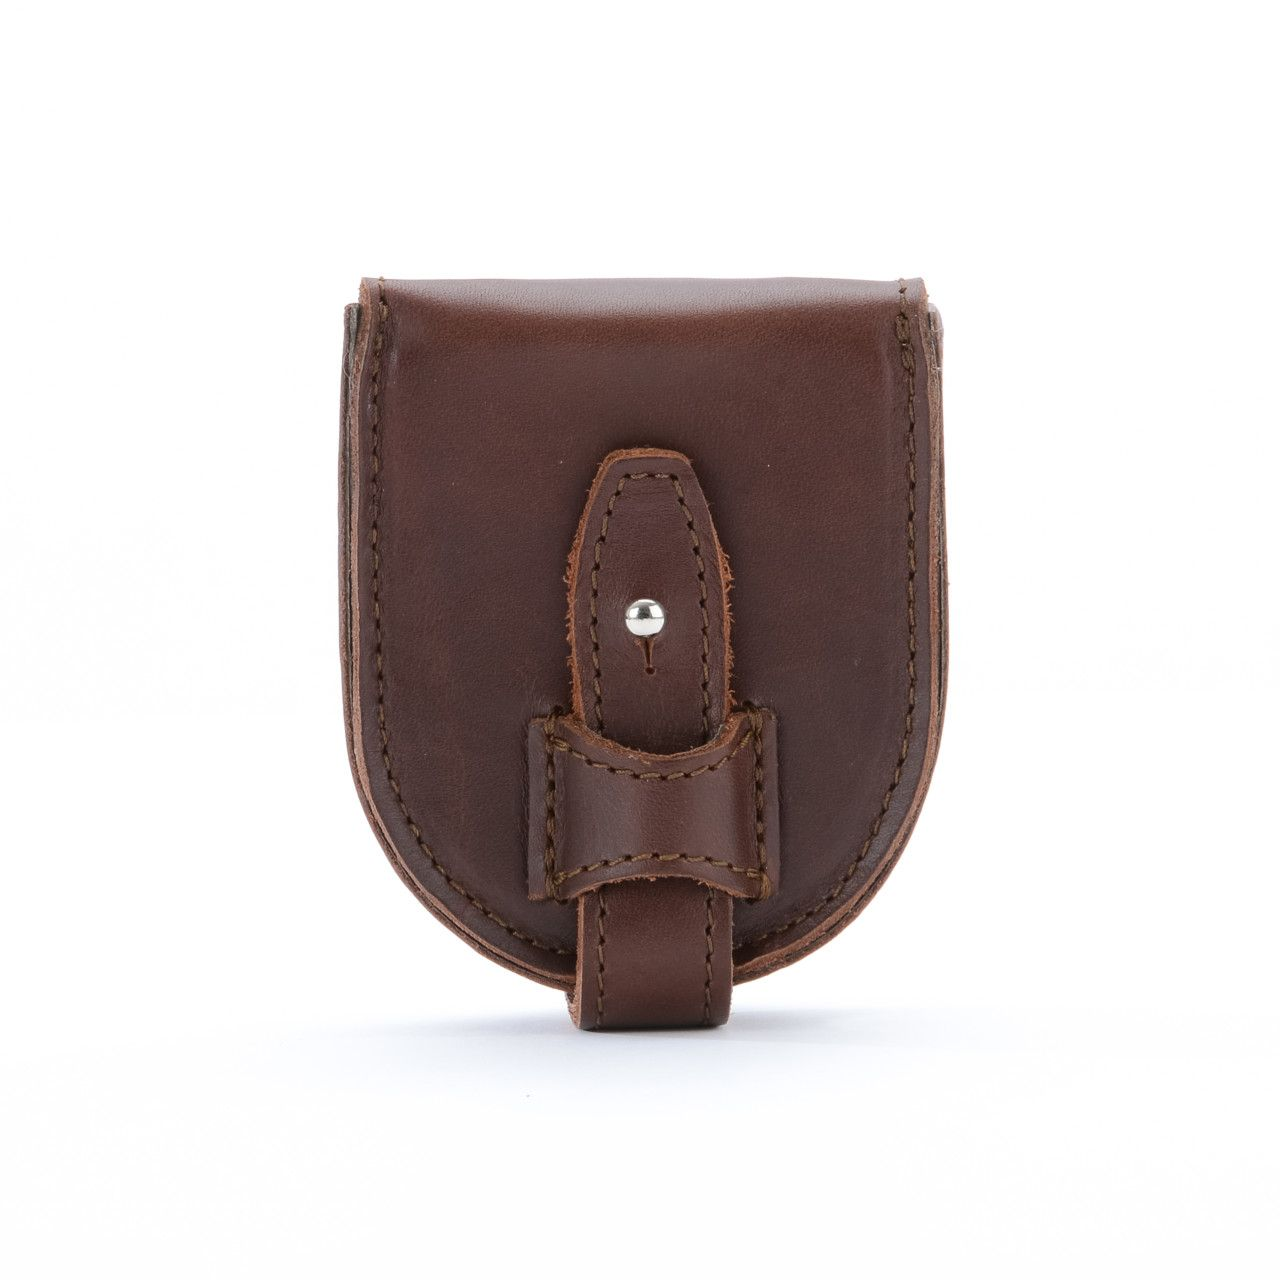 leather coin purse in chestnut leather